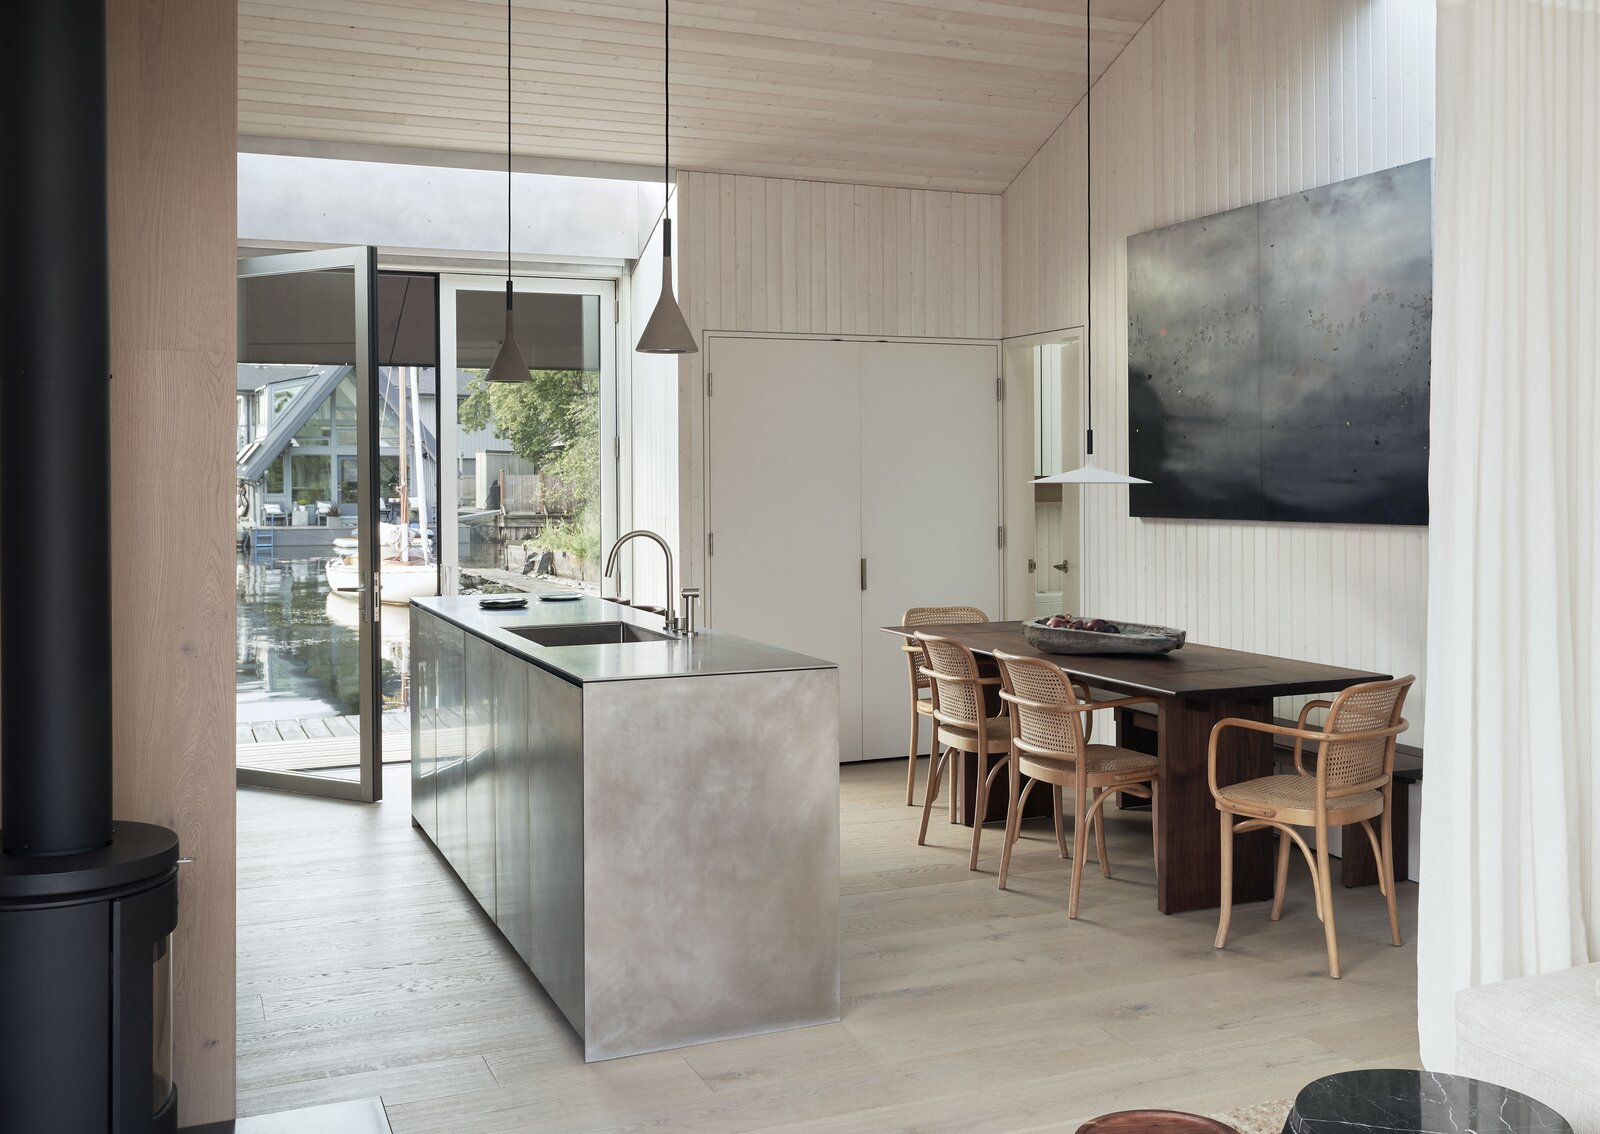 Doors, Swing Door Type, and Interior Photo by Kevin Scott  Photo 1 of 13 in This Breezy Floating Home Makes the Most of a Tranquil Setting Along Seattle's Portage Bay